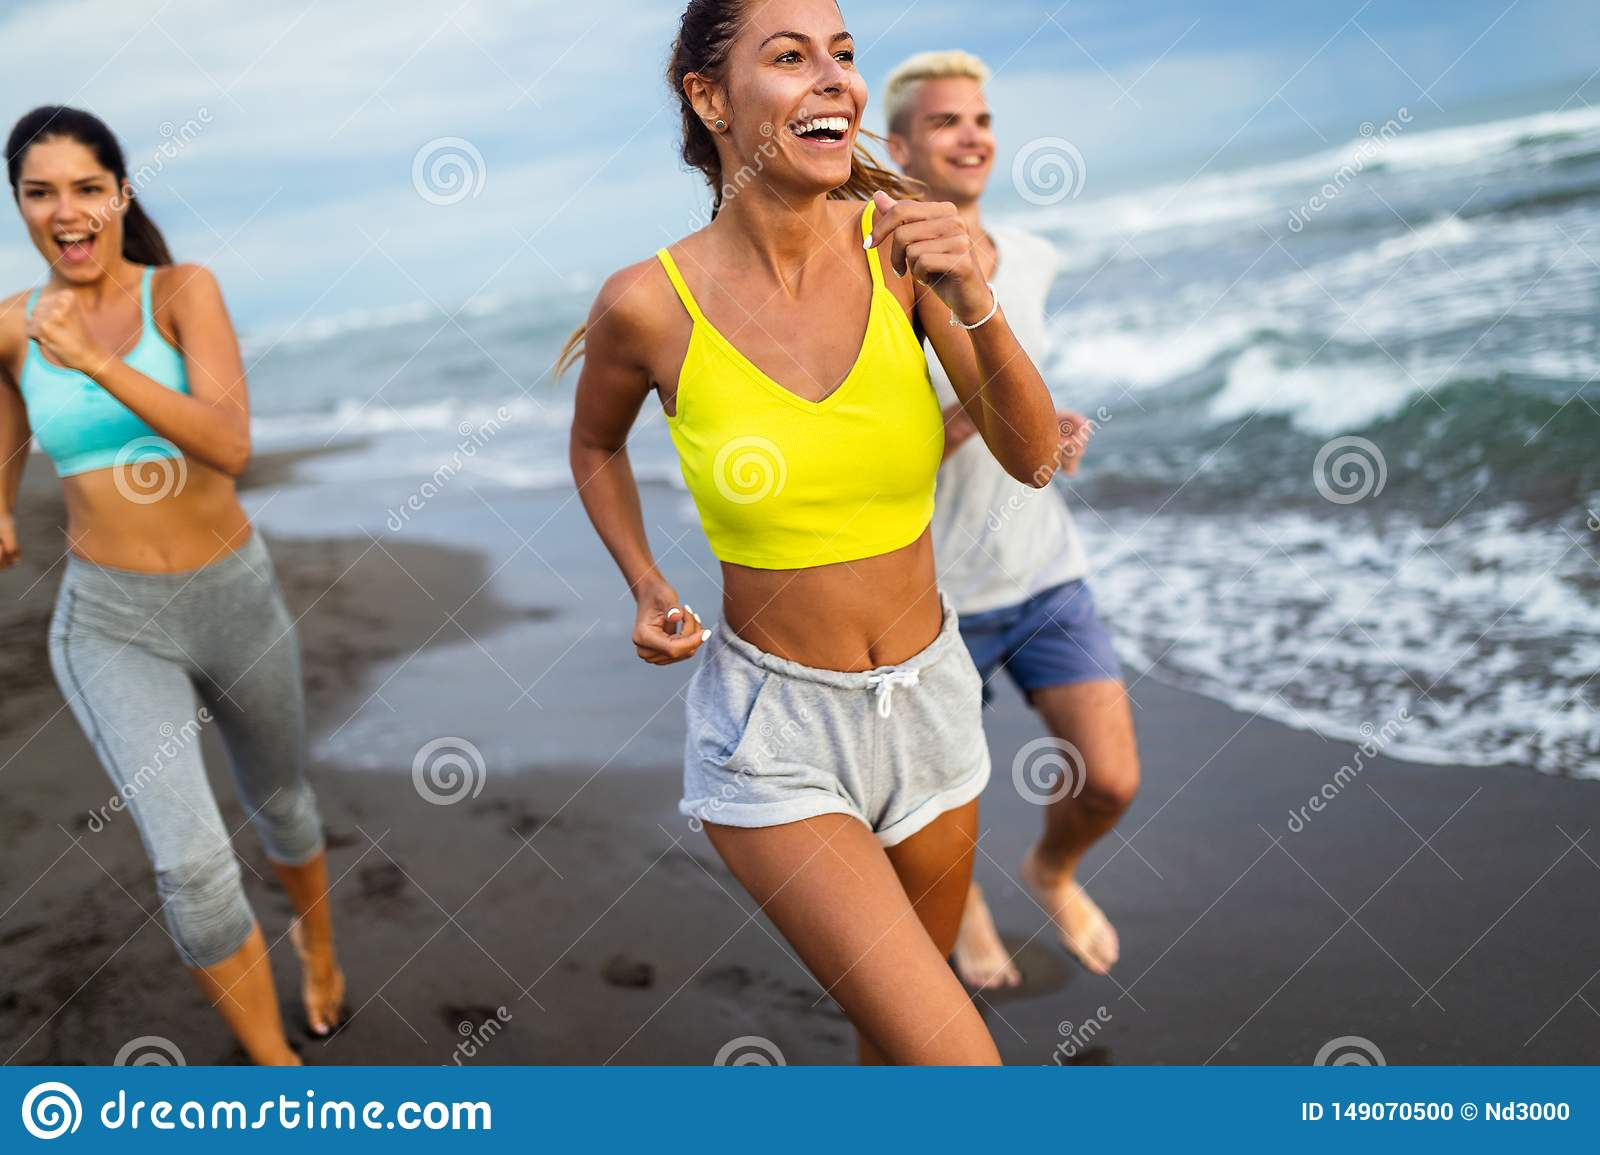 Group of athletes running on ocean front. Friends in sportswear training together outdoors.